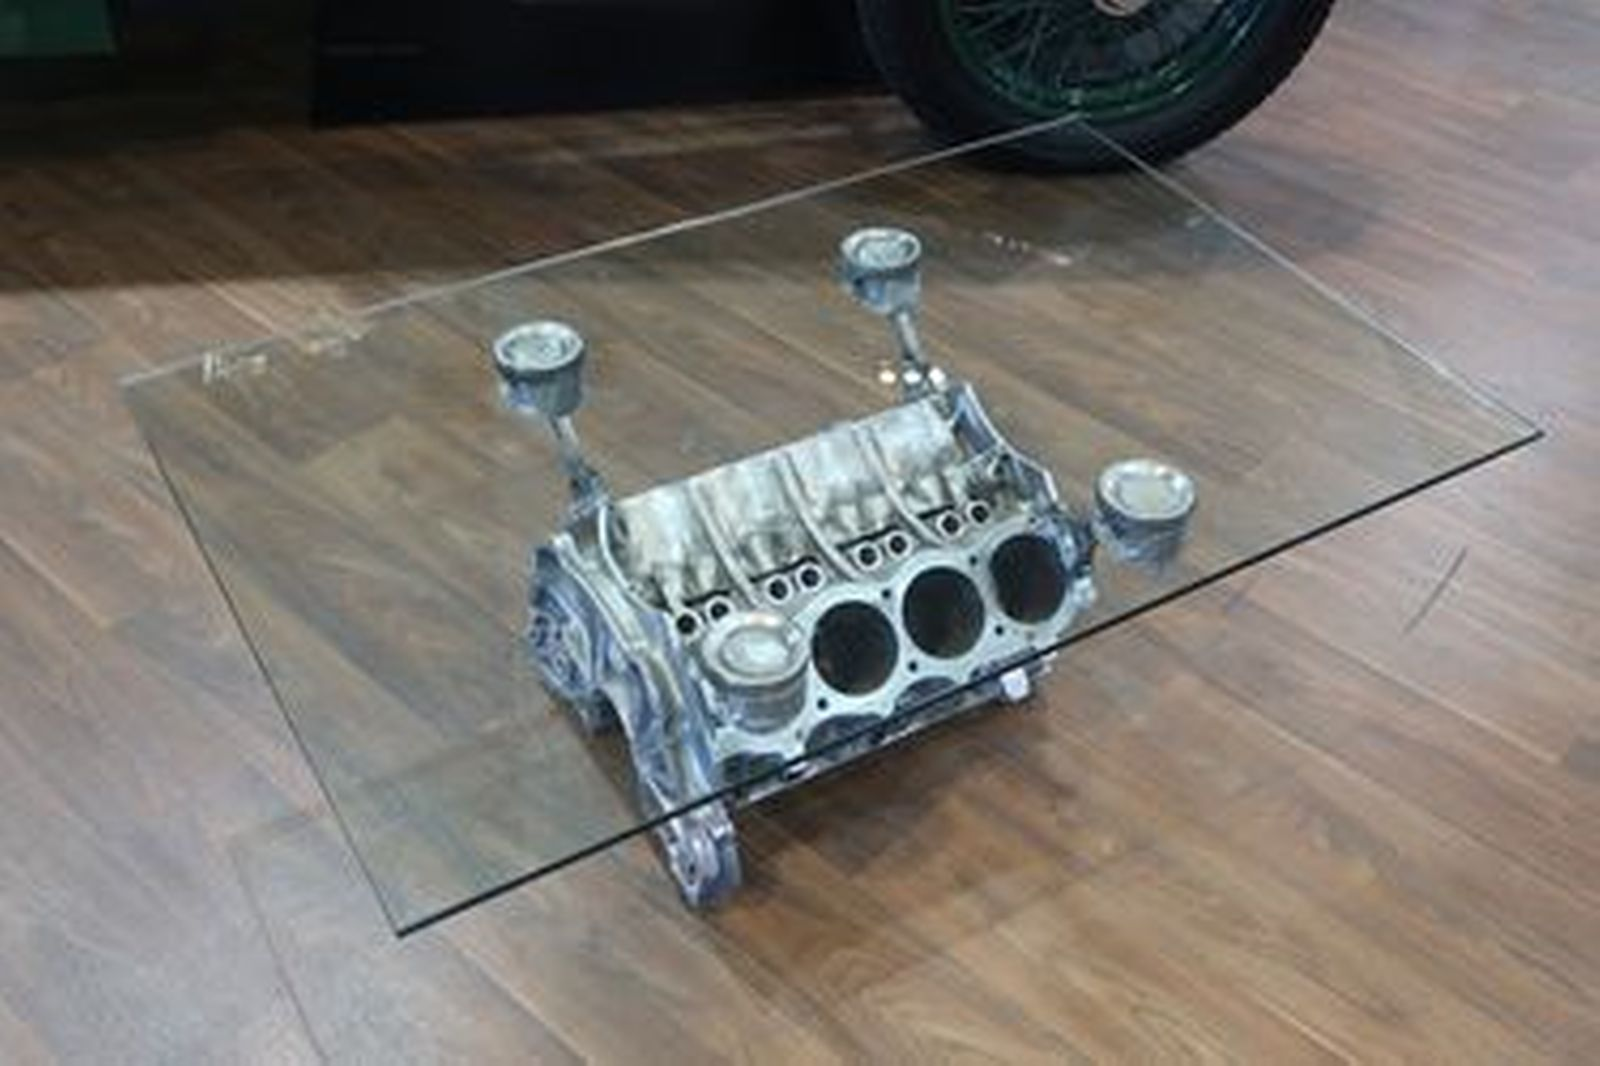 Coffee Table - Rover V8 Engine Block with 10mm Bevelled Edge Glass Top (123 x 80cm)